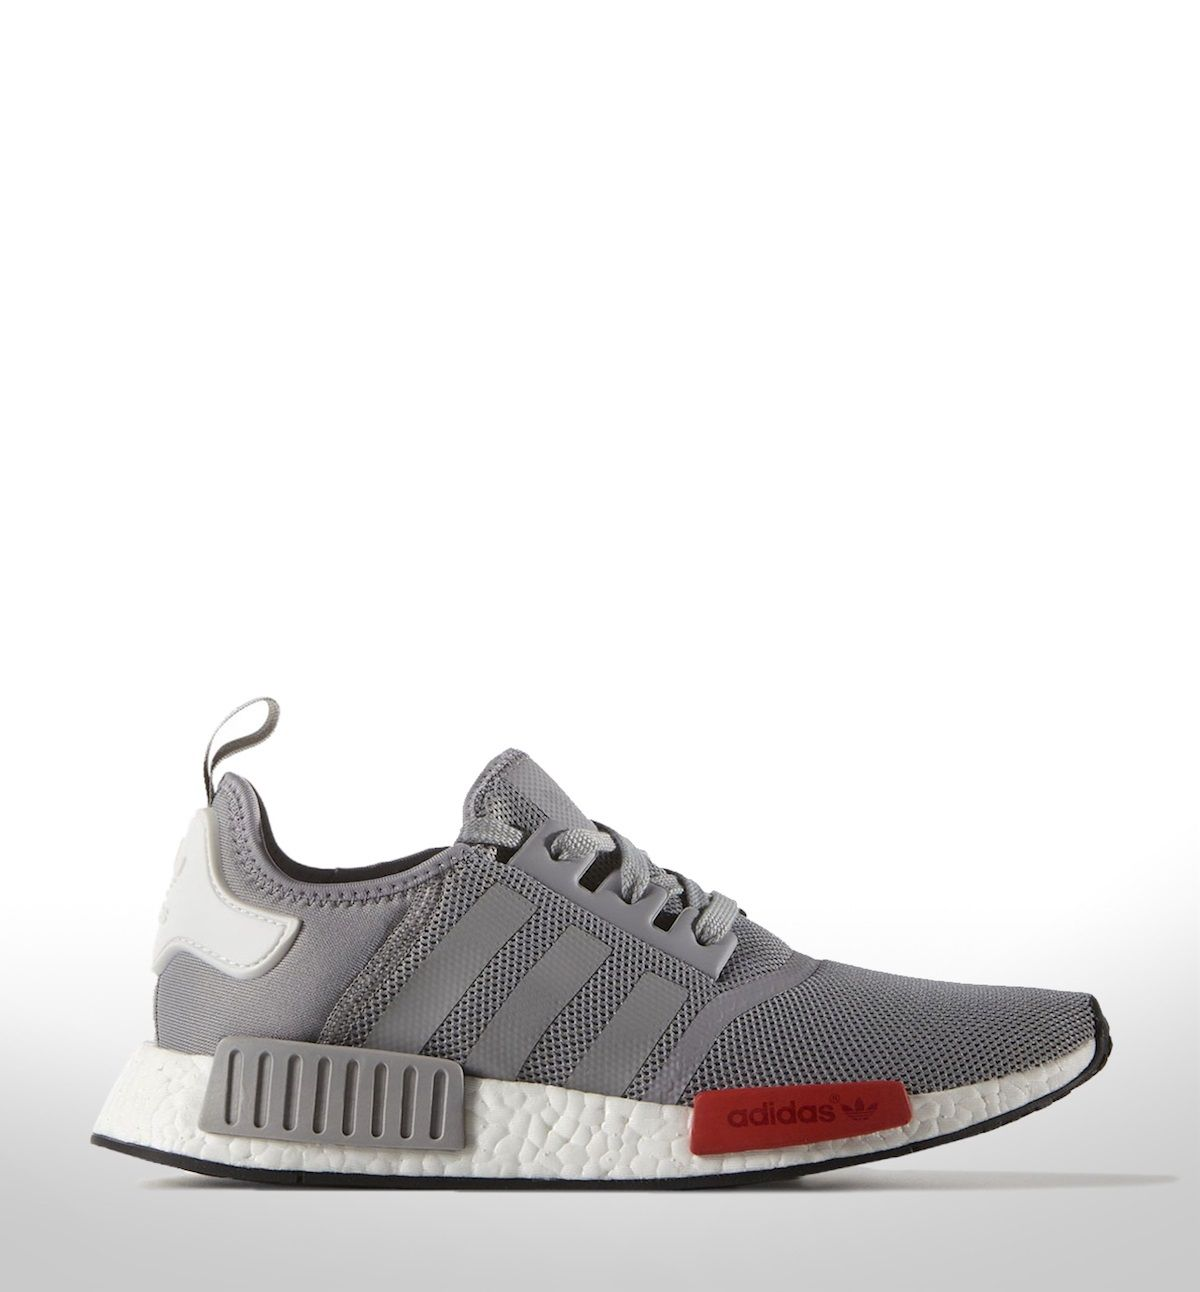 adidas Originals NMD: Red | Sneakers | Pinterest | Nmd, Adidas and Originals